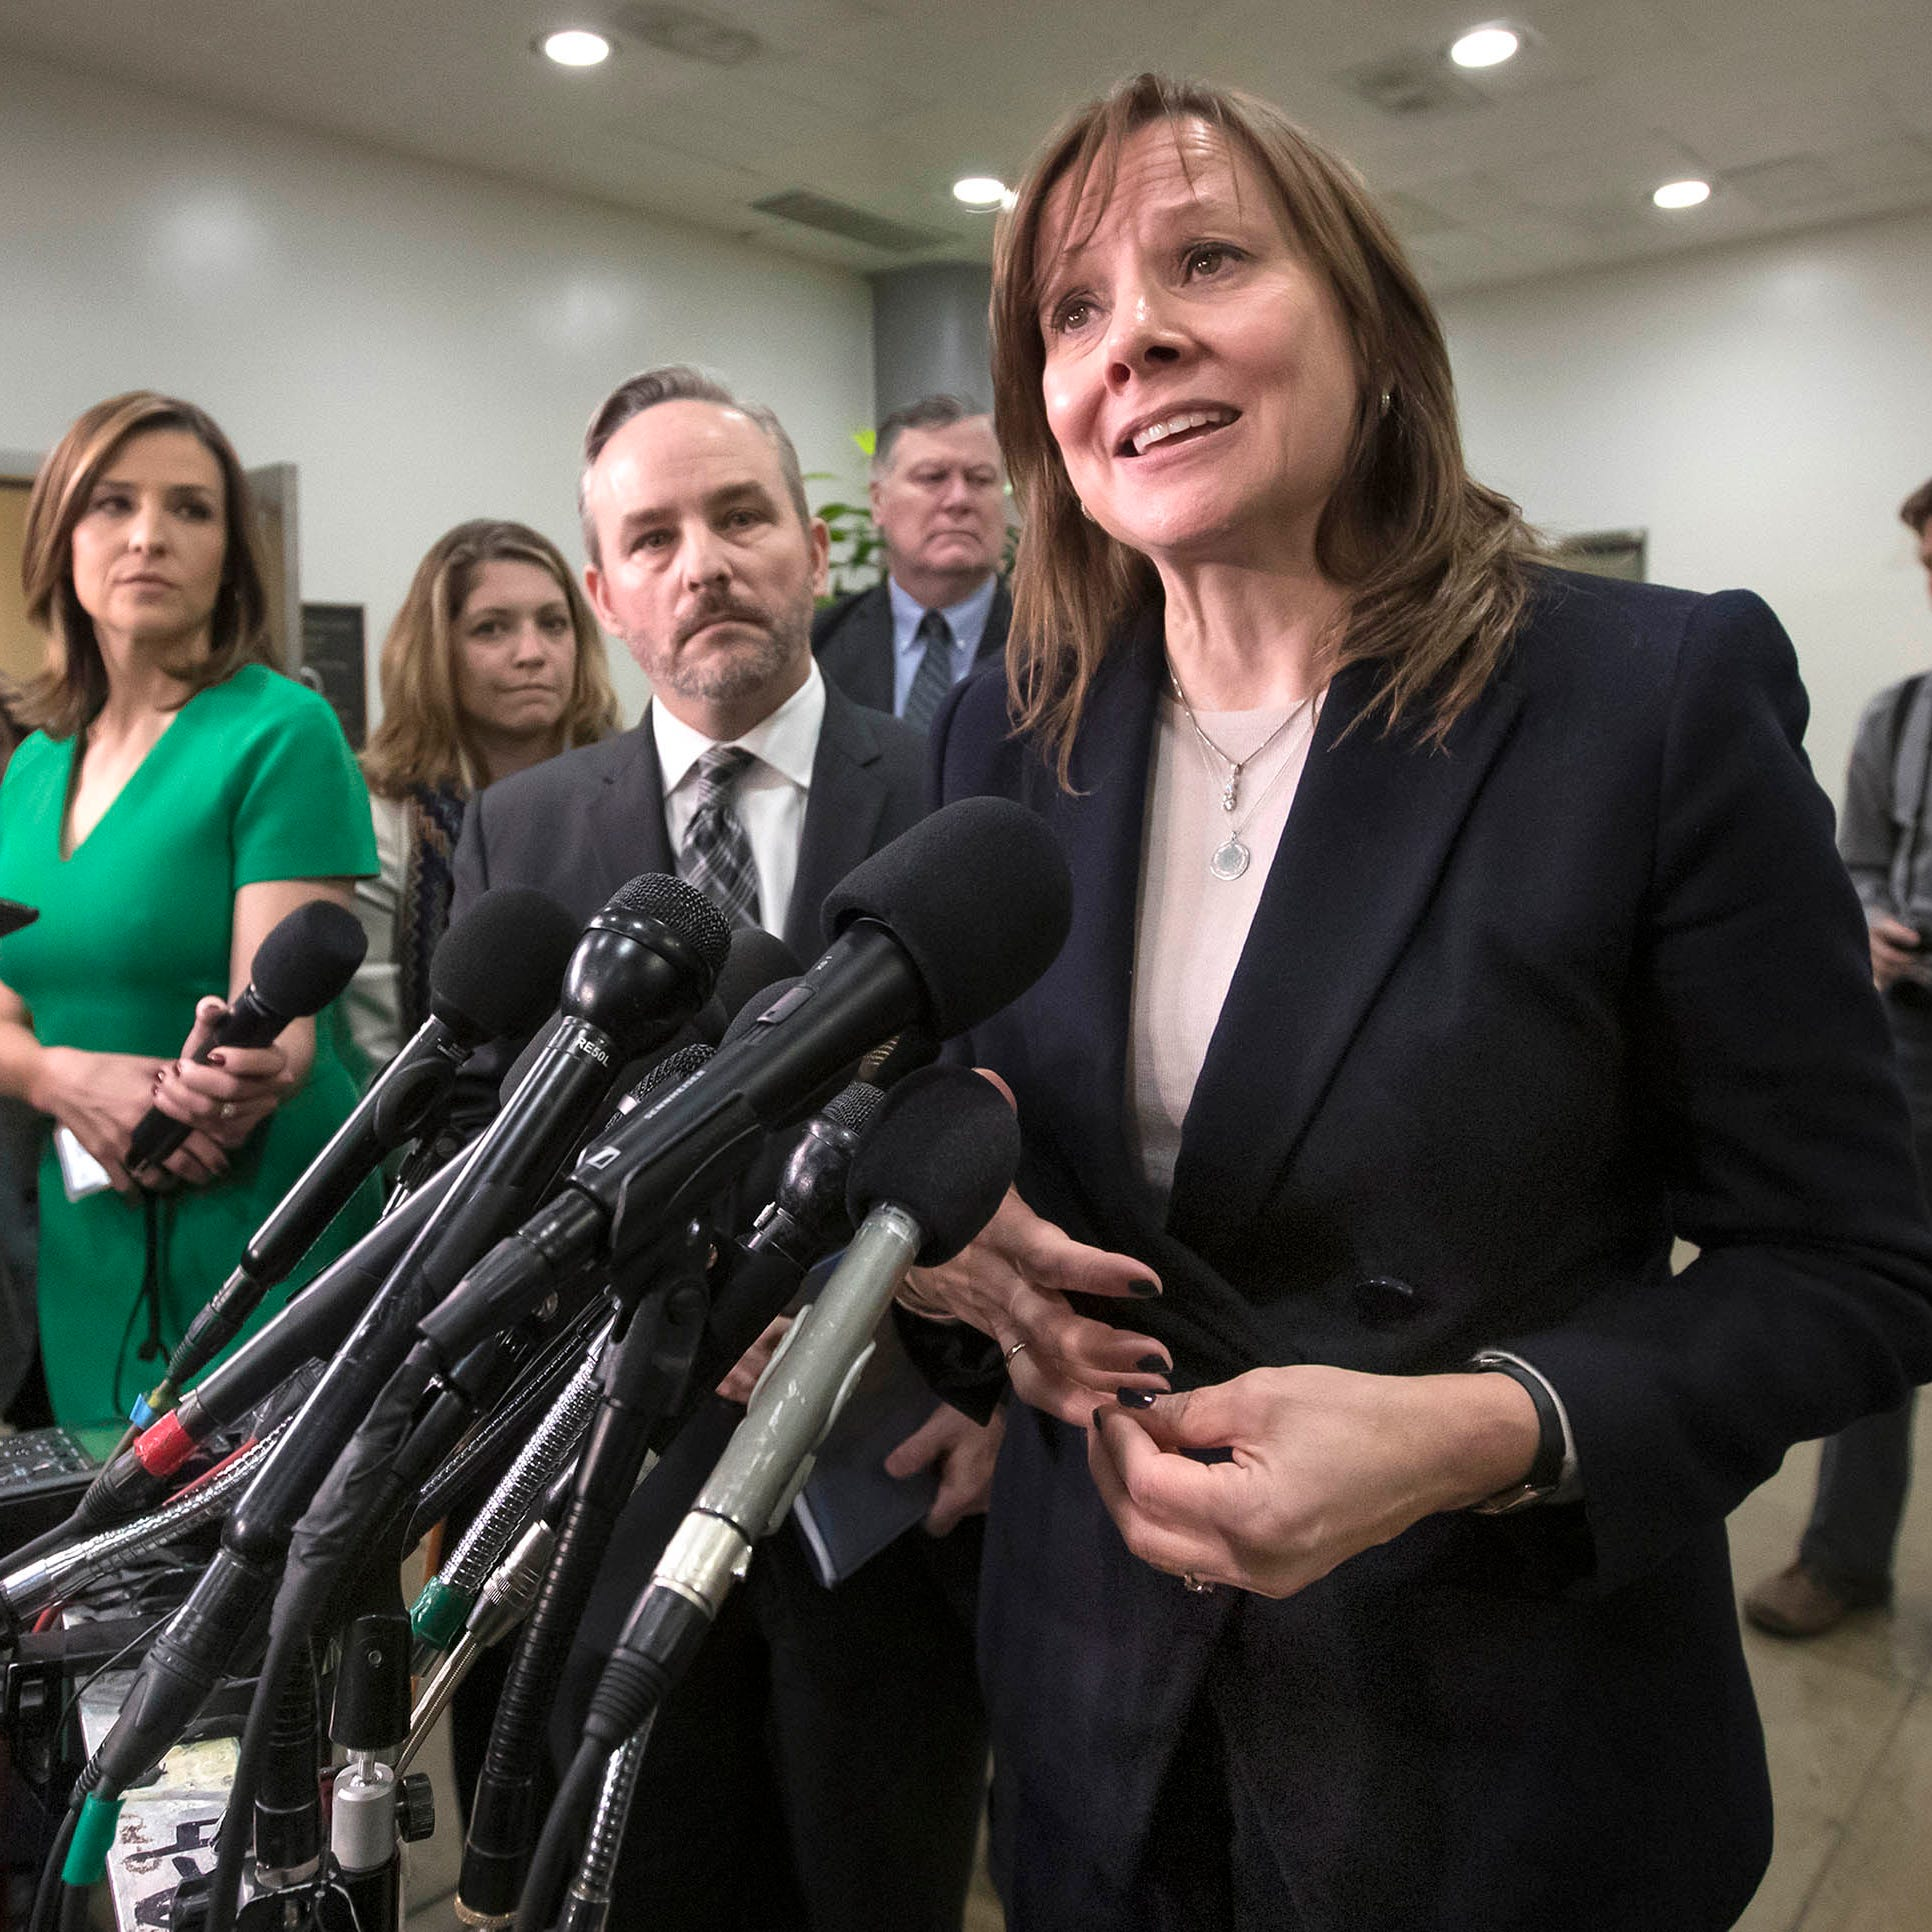 General Motors retiree has this advice for Mary Barra